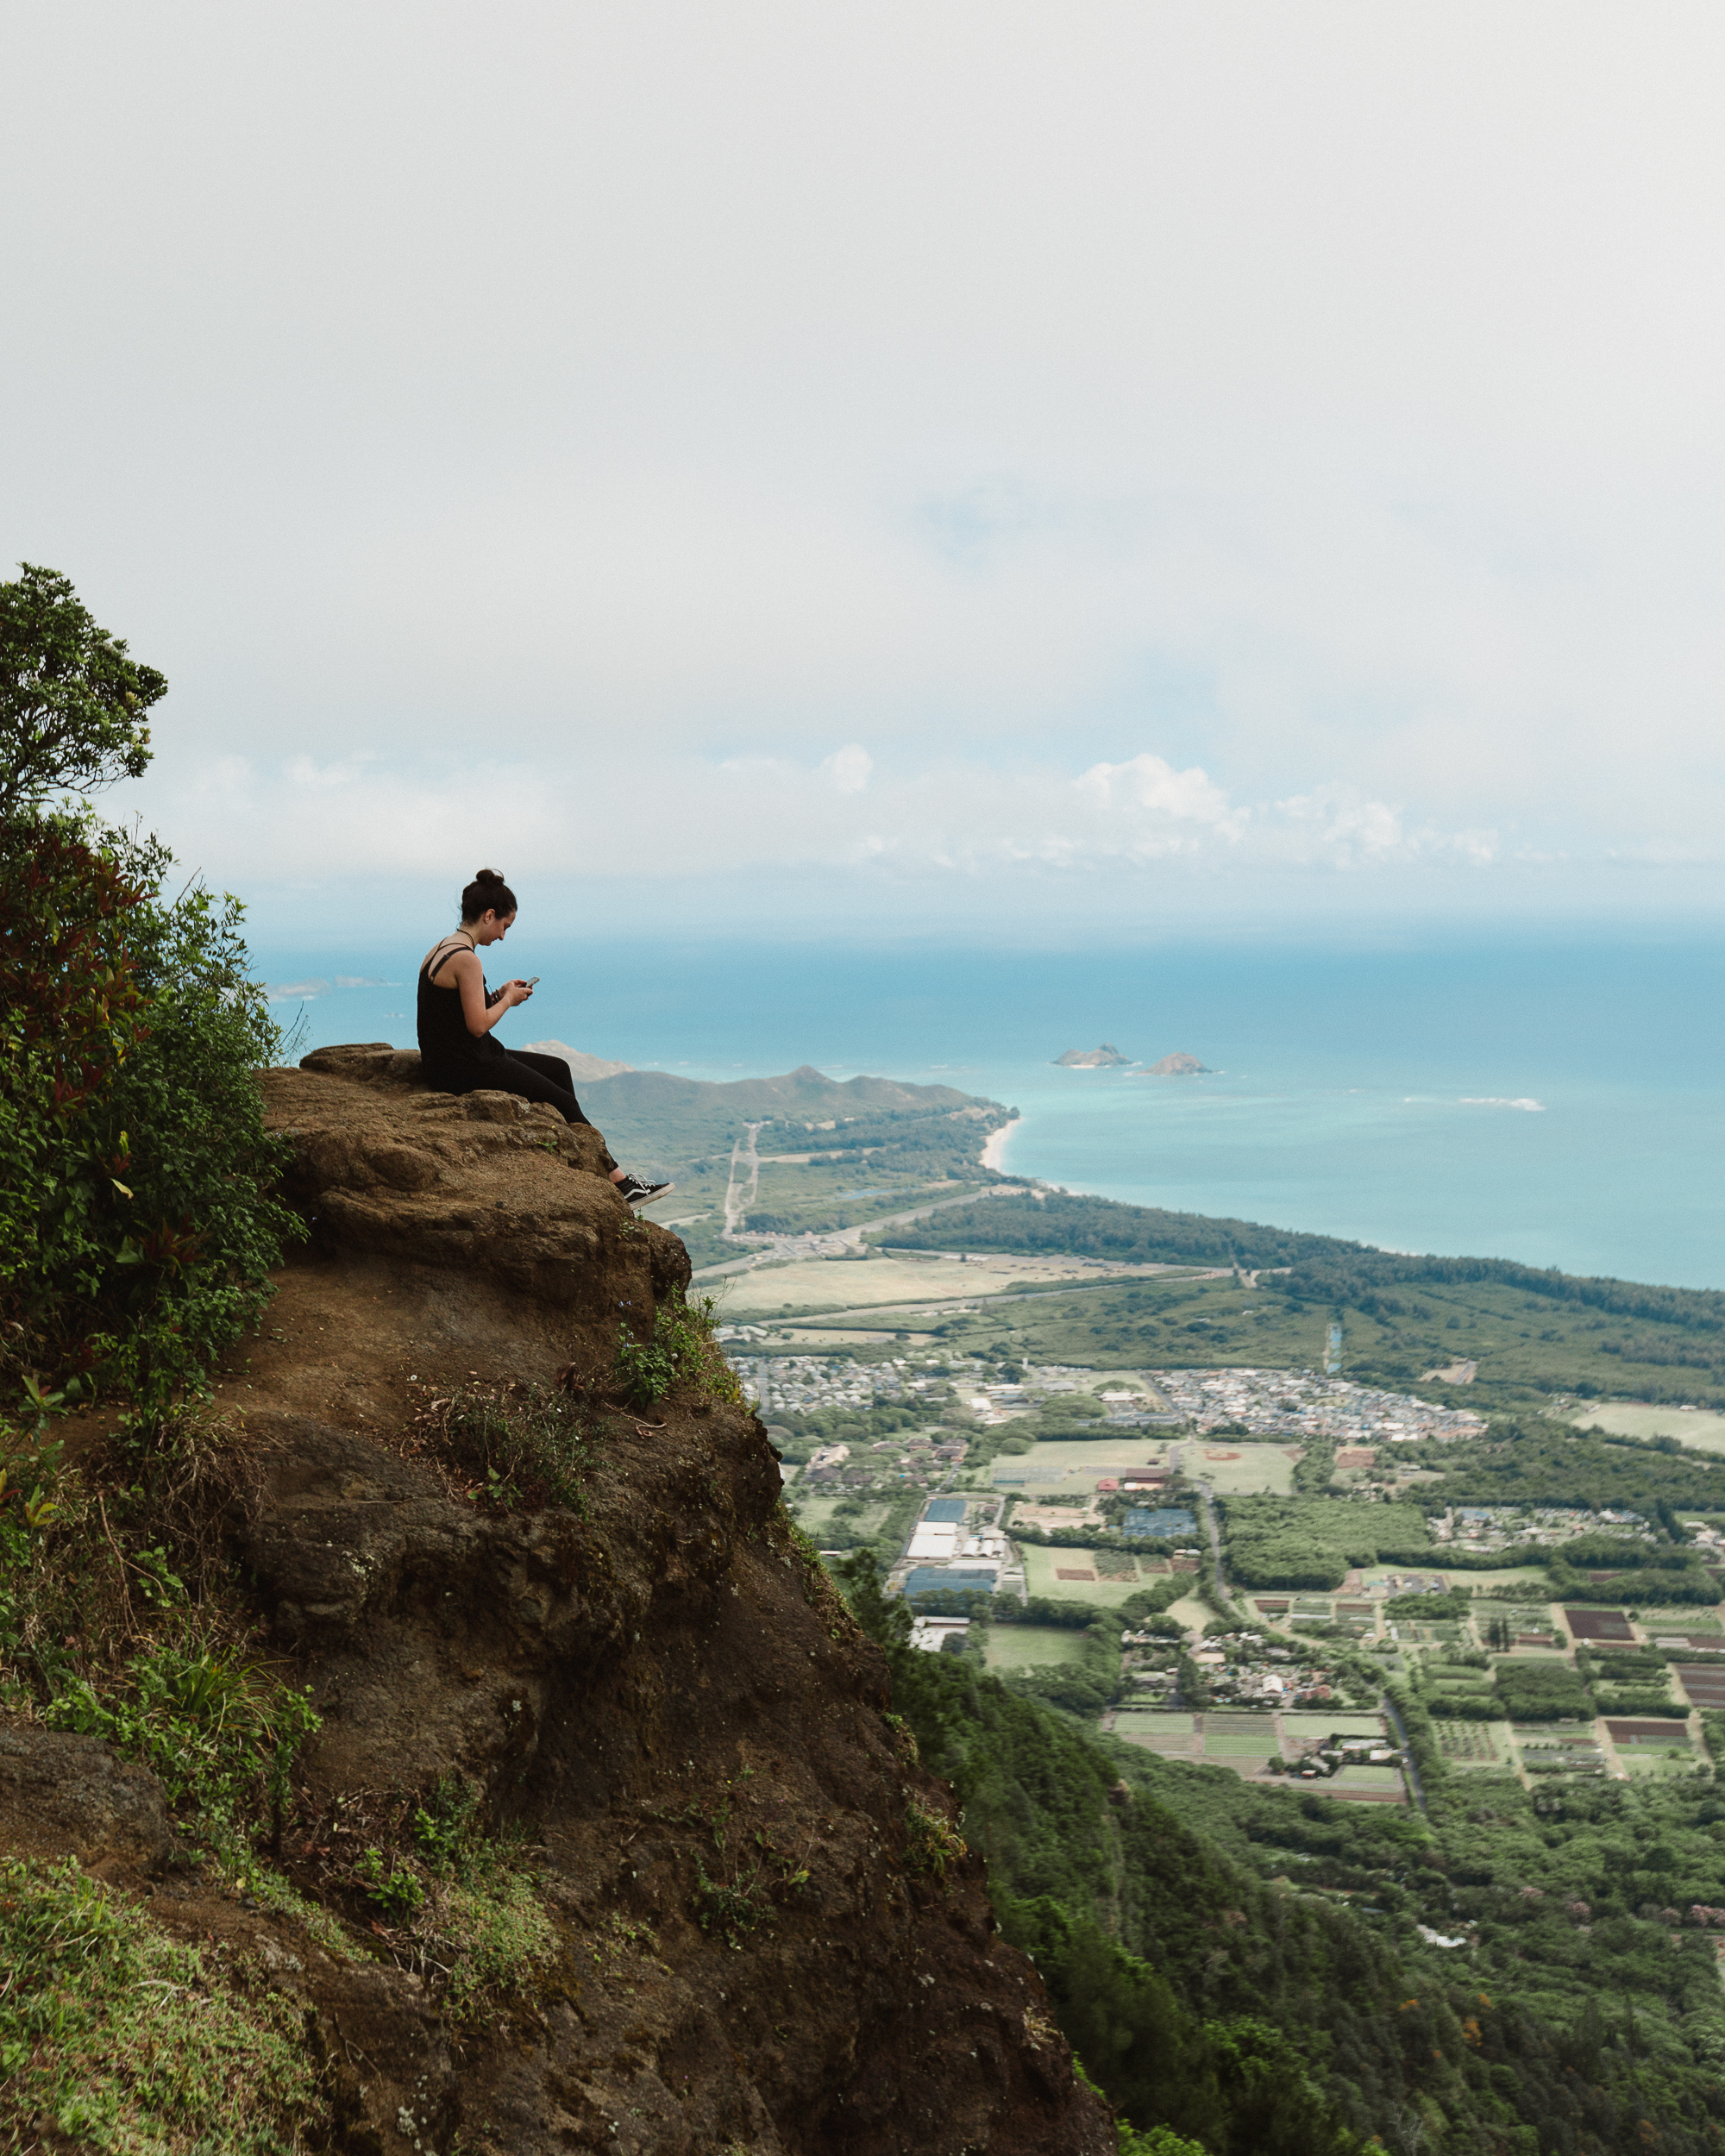 The view from the top of the trail looking toward Lanikai.